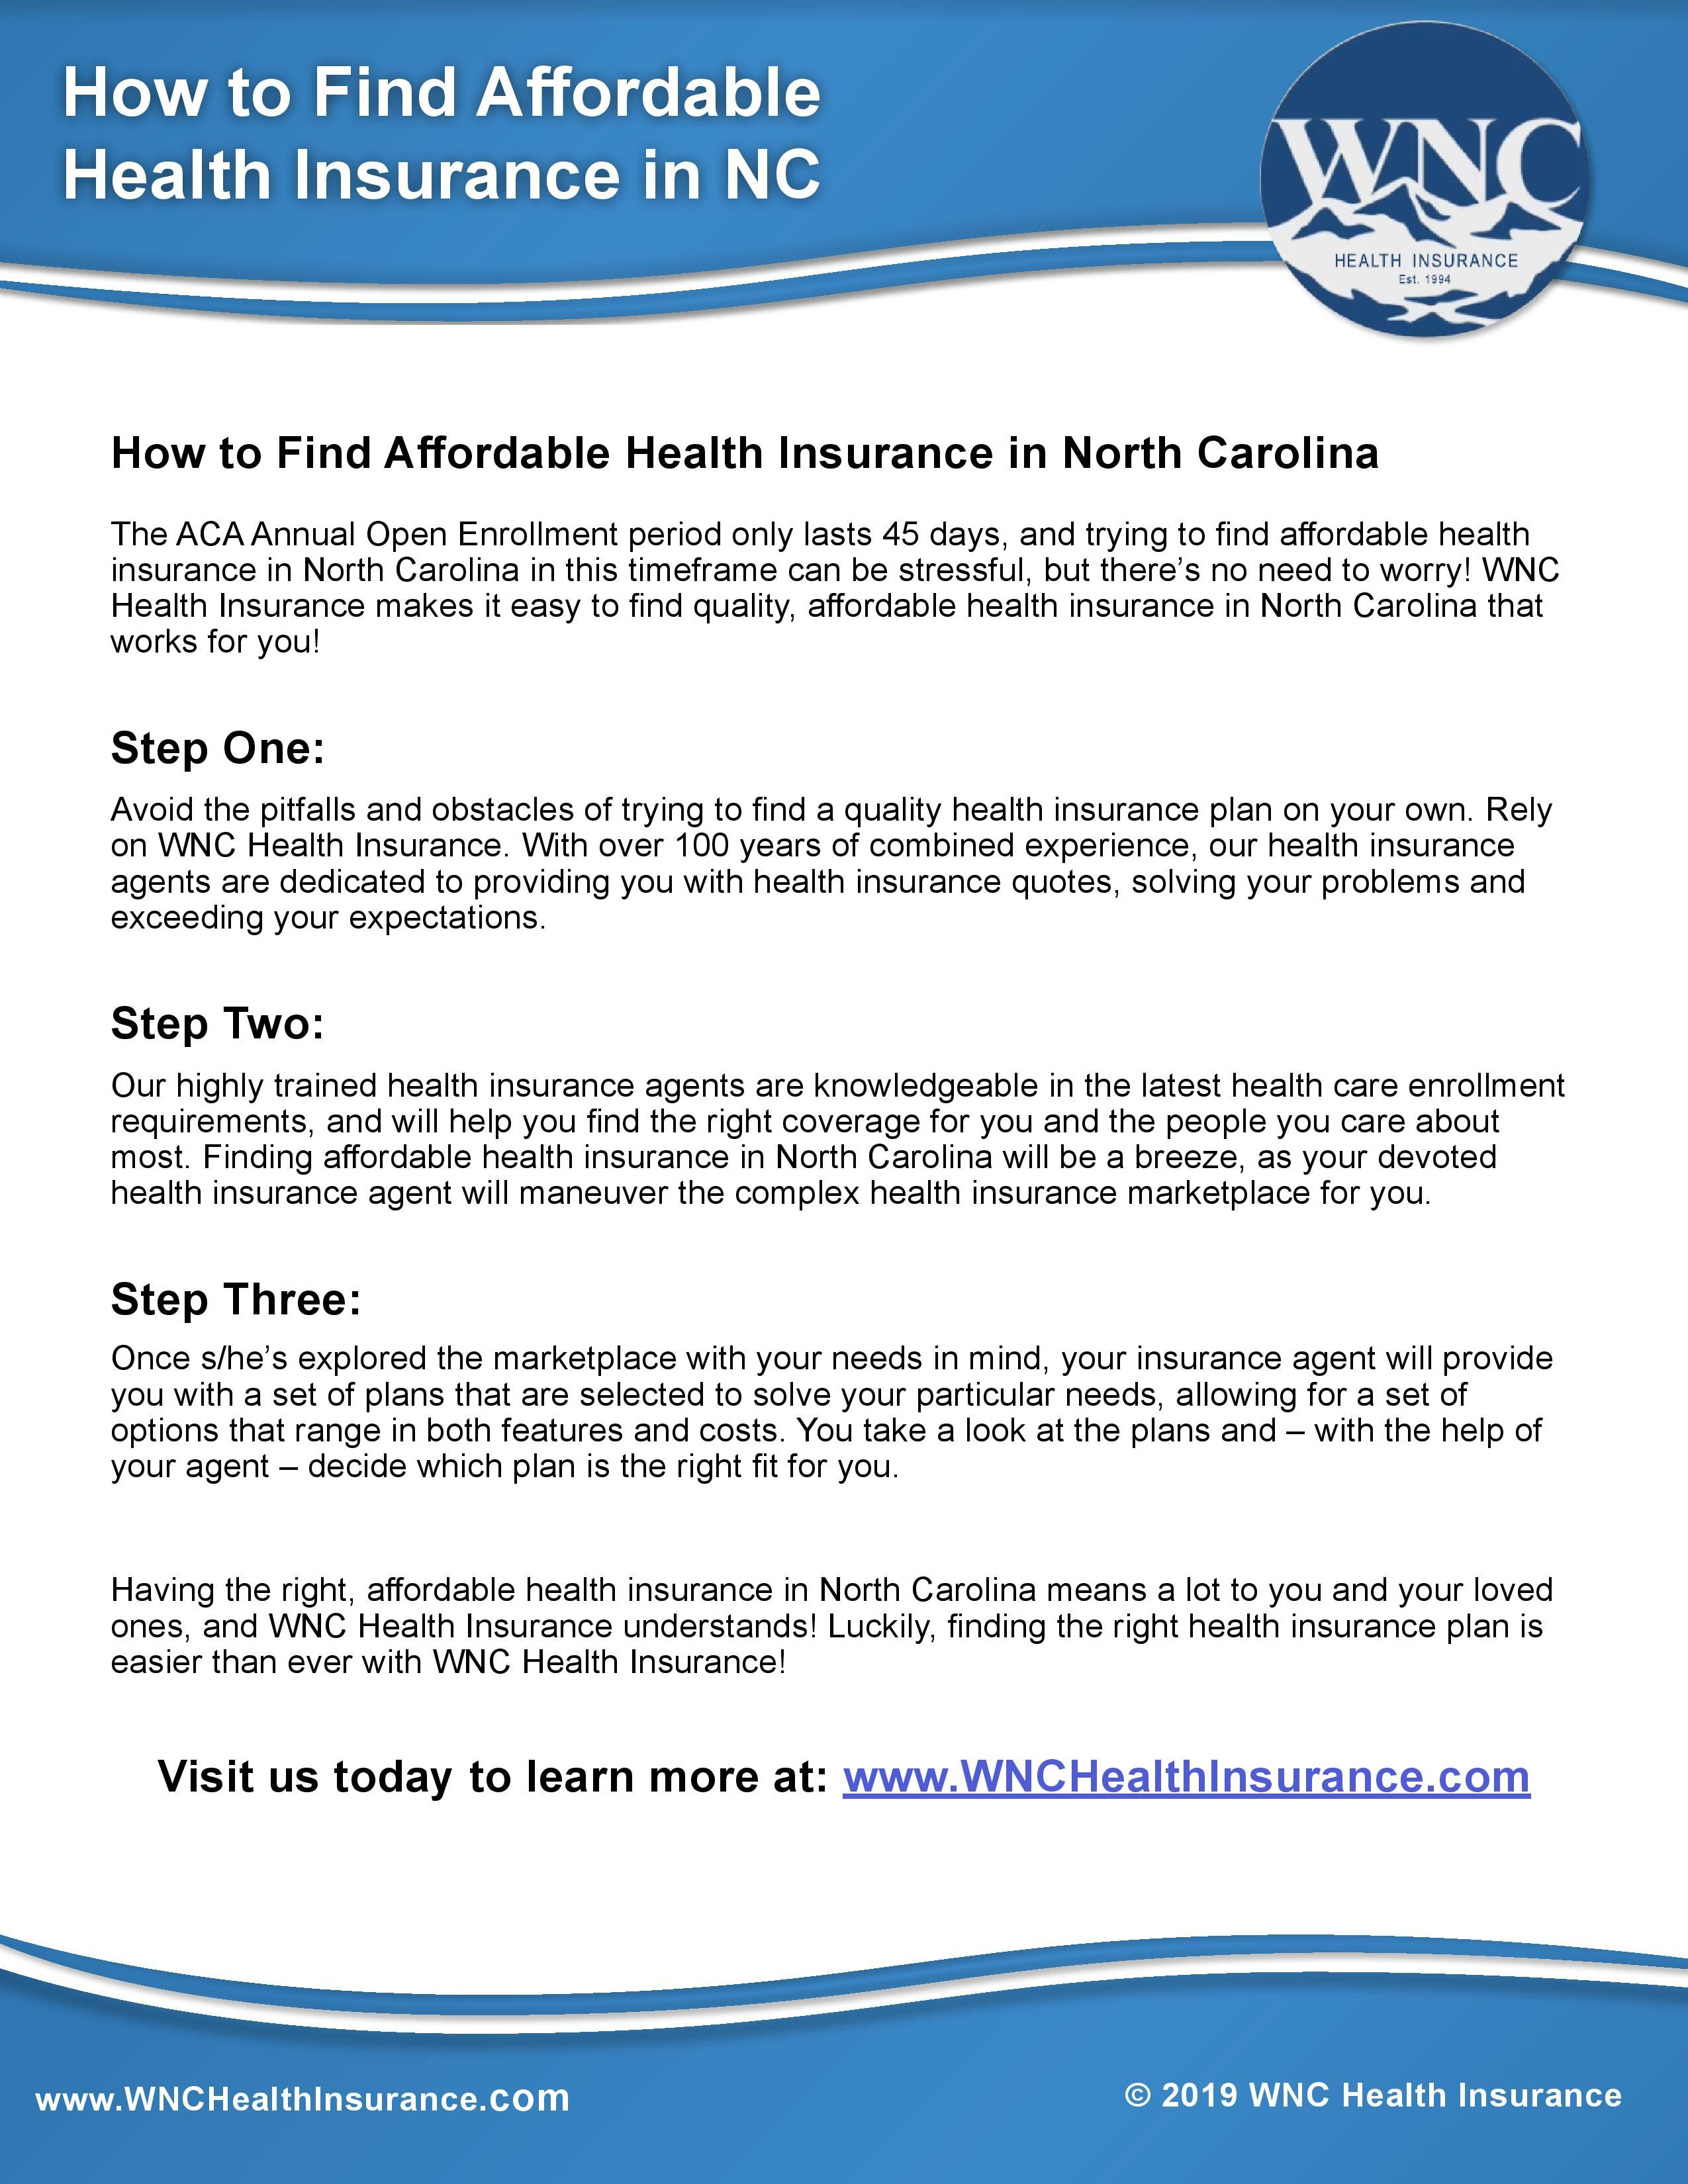 Pin by WNC Health Insurance on North Carolina Health